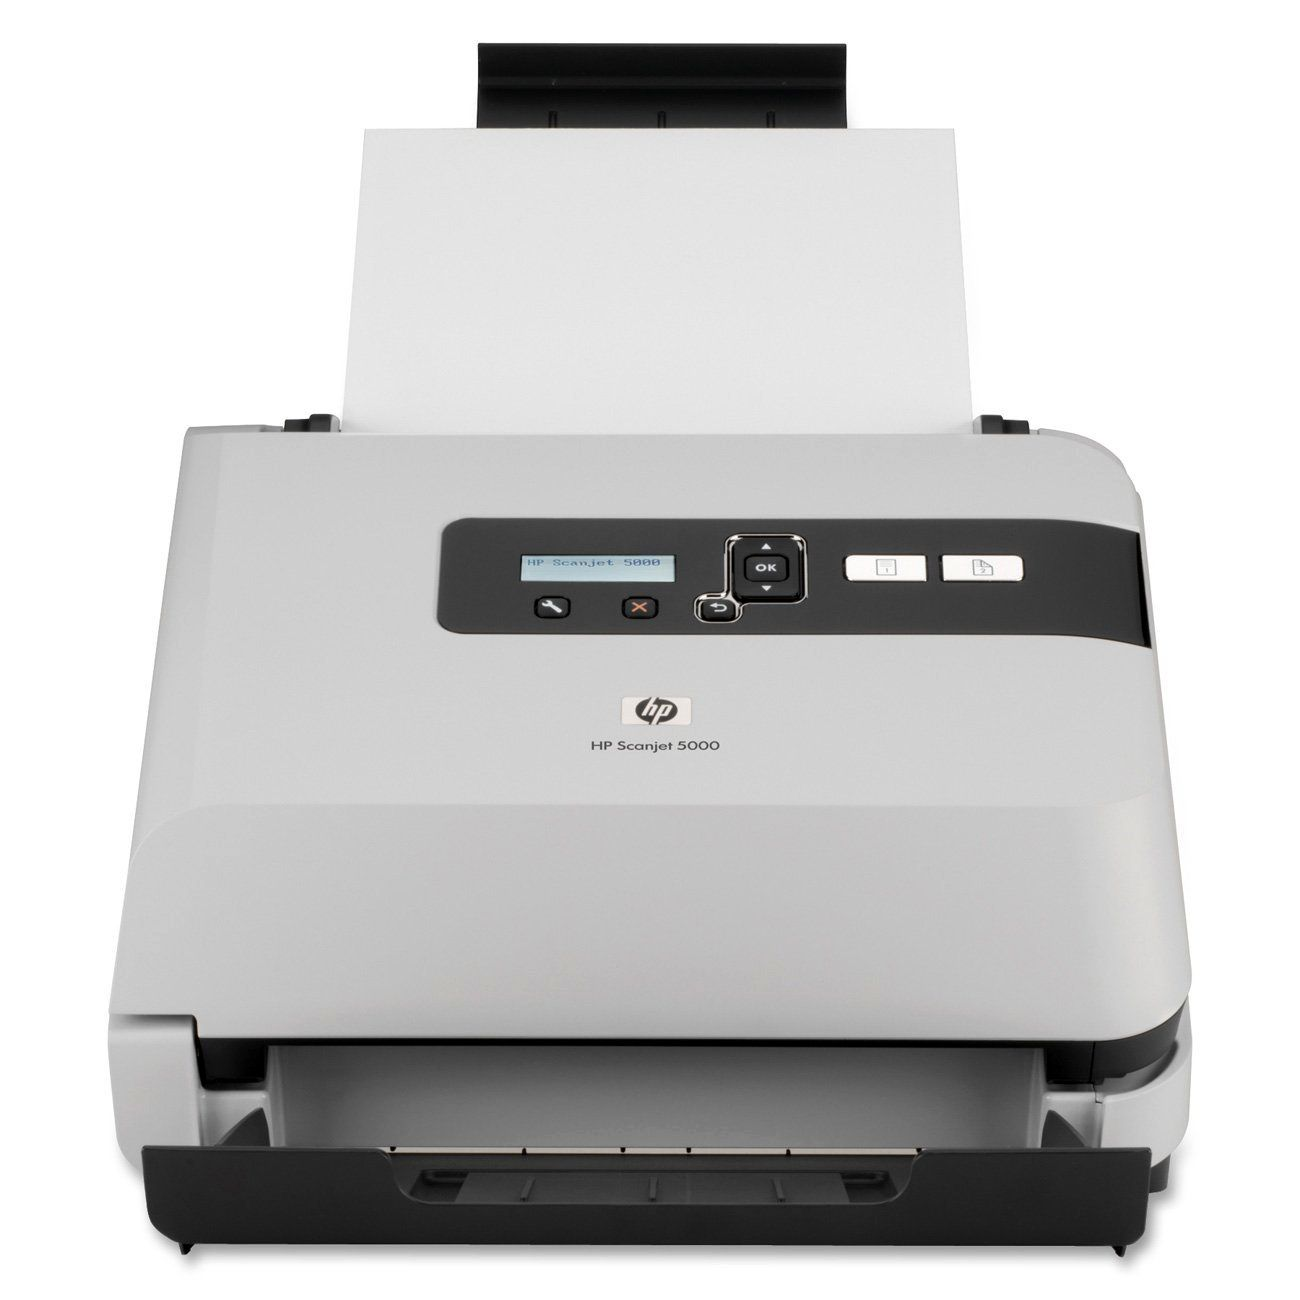 Visioneers roadwarrior x3 mobile document scanner hp scanjet enterprise flow 5000 s2 sheet fed scanner reheart Image collections